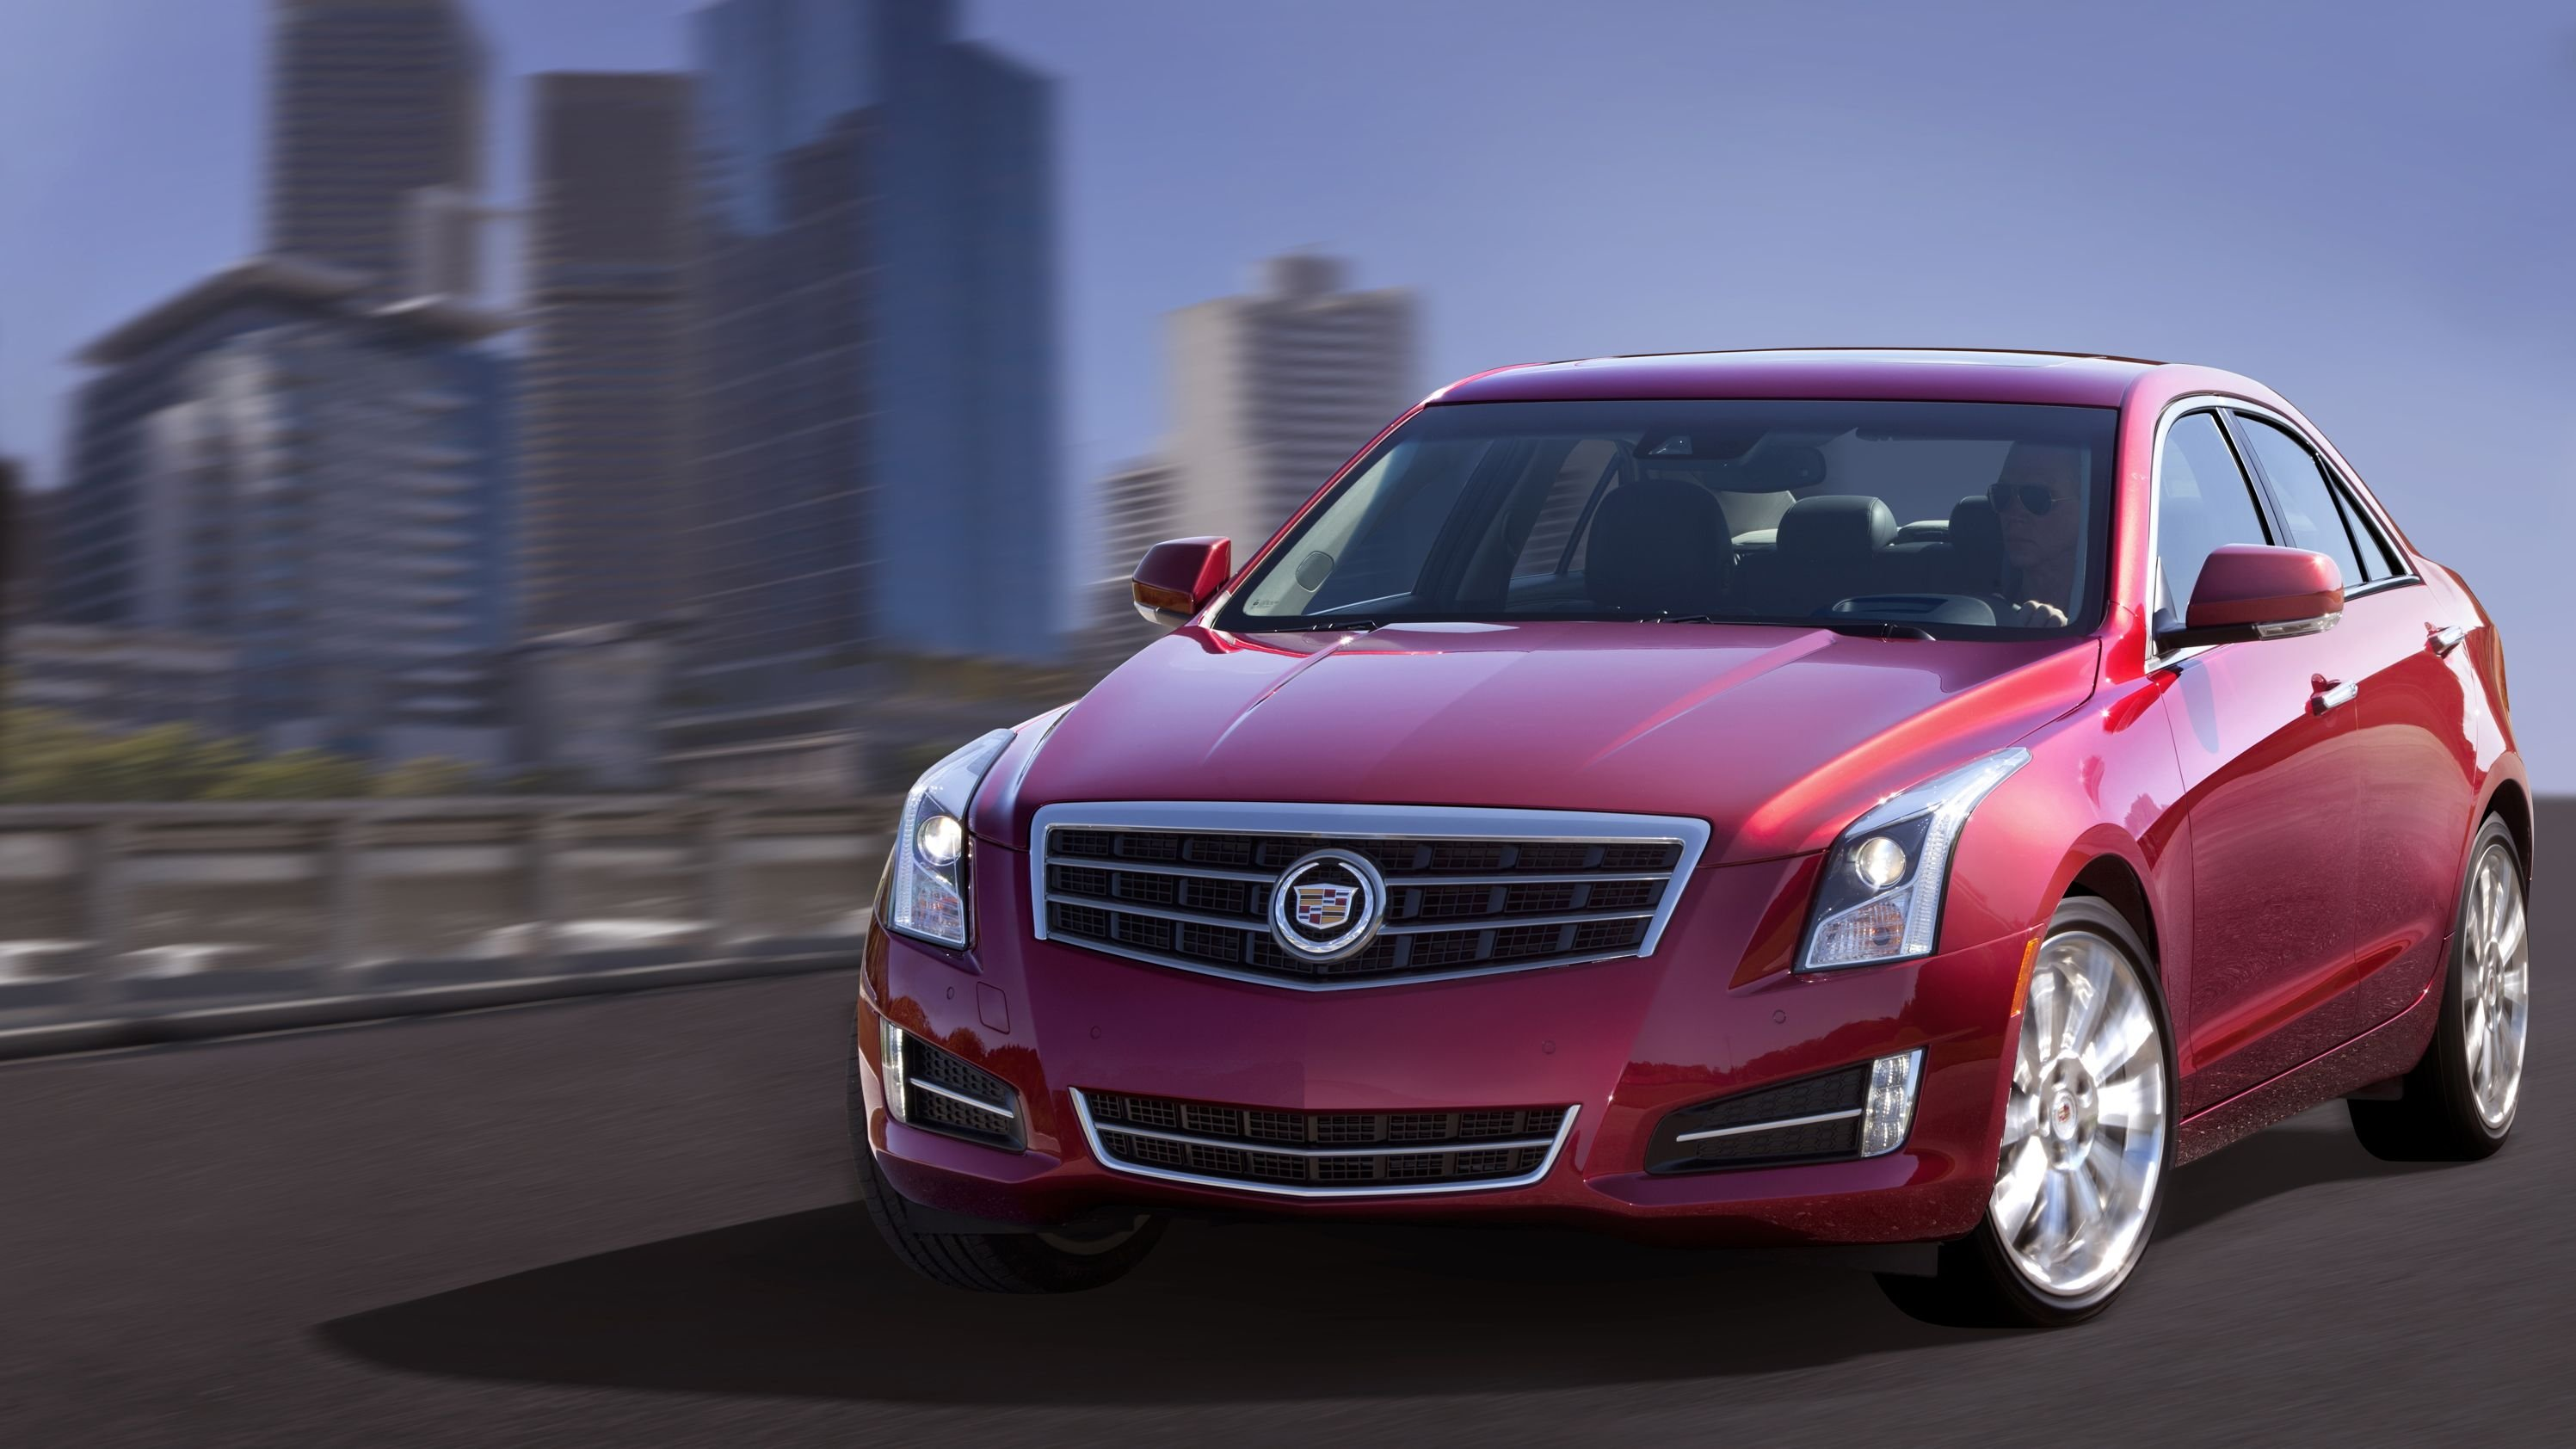 Cadillac ATS Wins Awards From Popular Mechanics and the Motor Press Guild